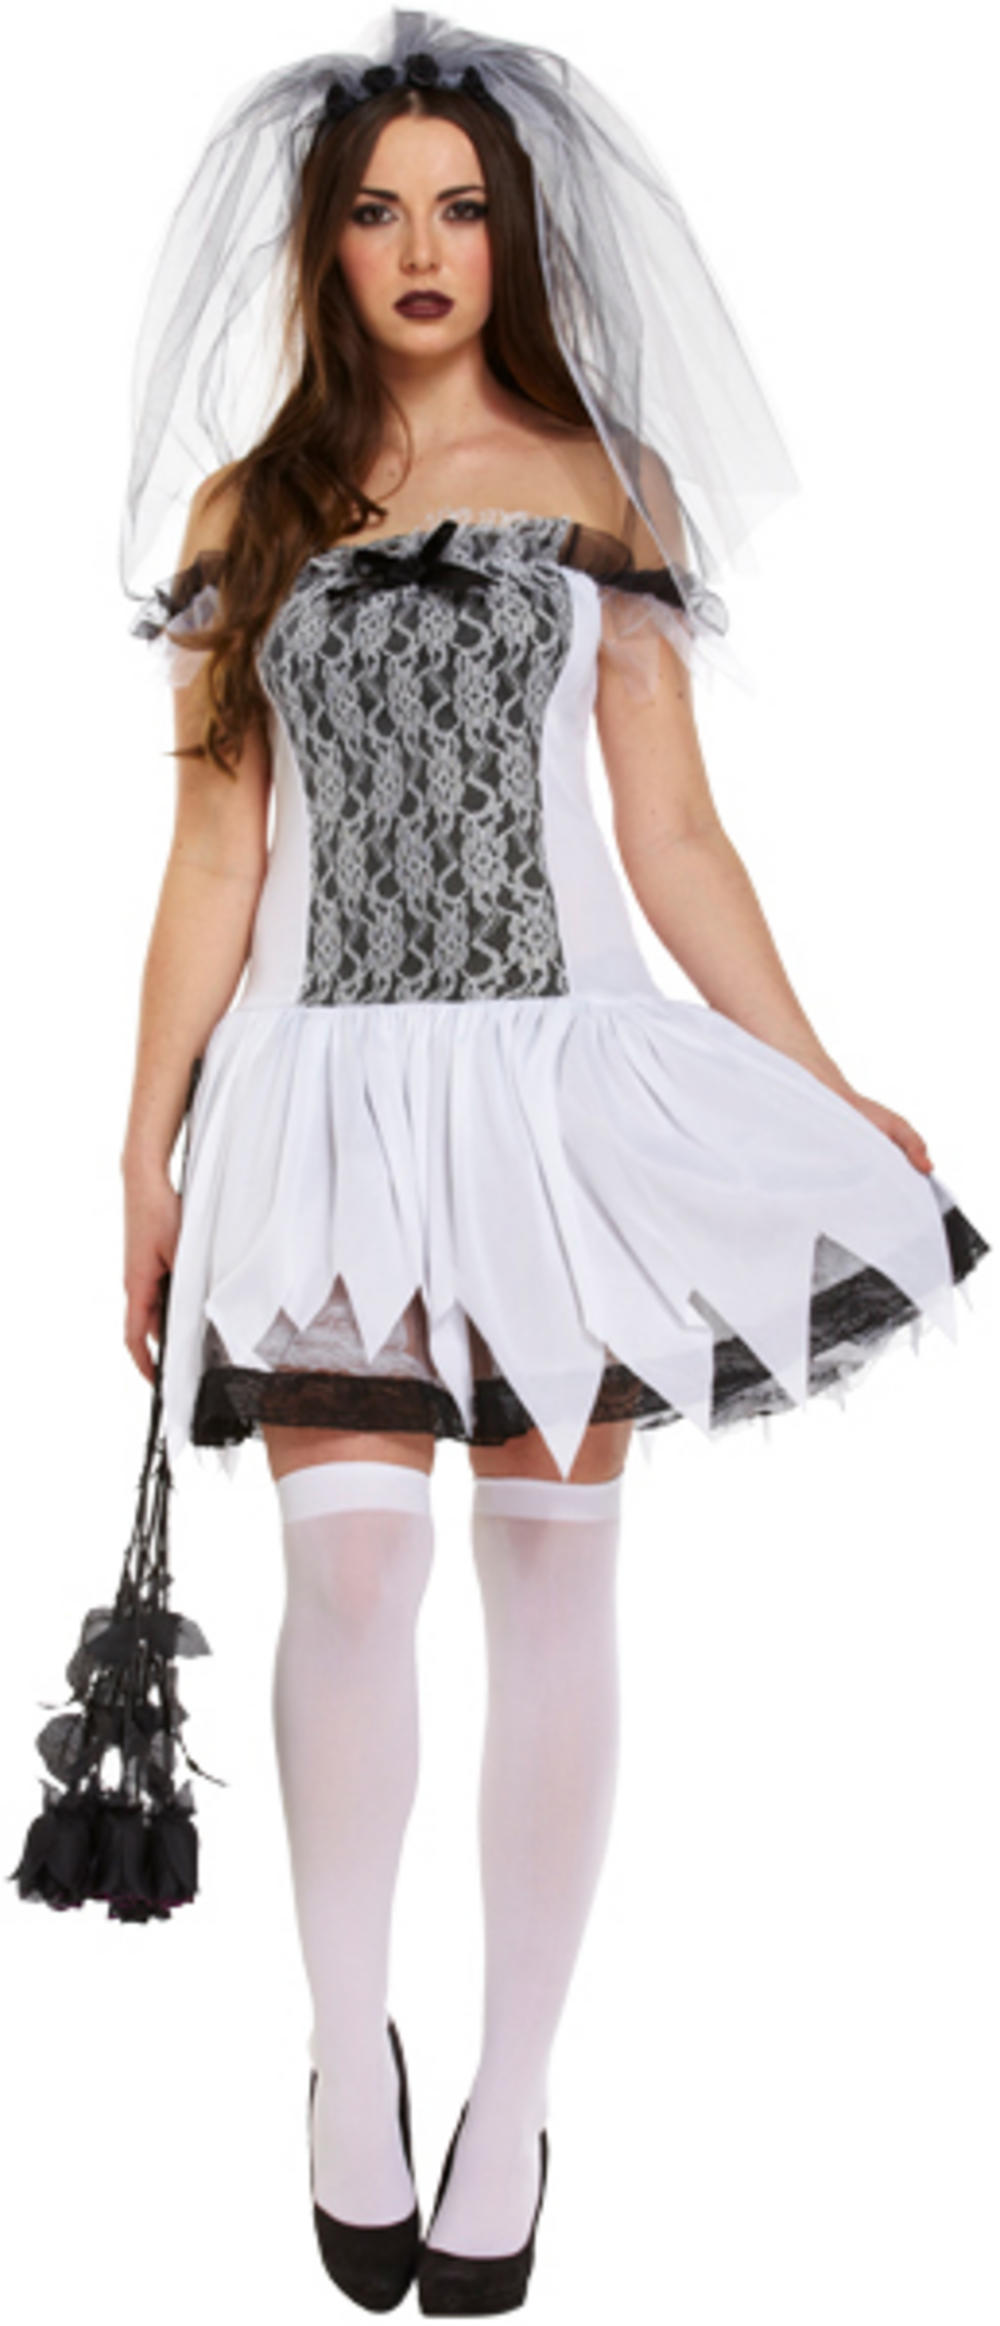 Undead Teen Bride Ladies Costume